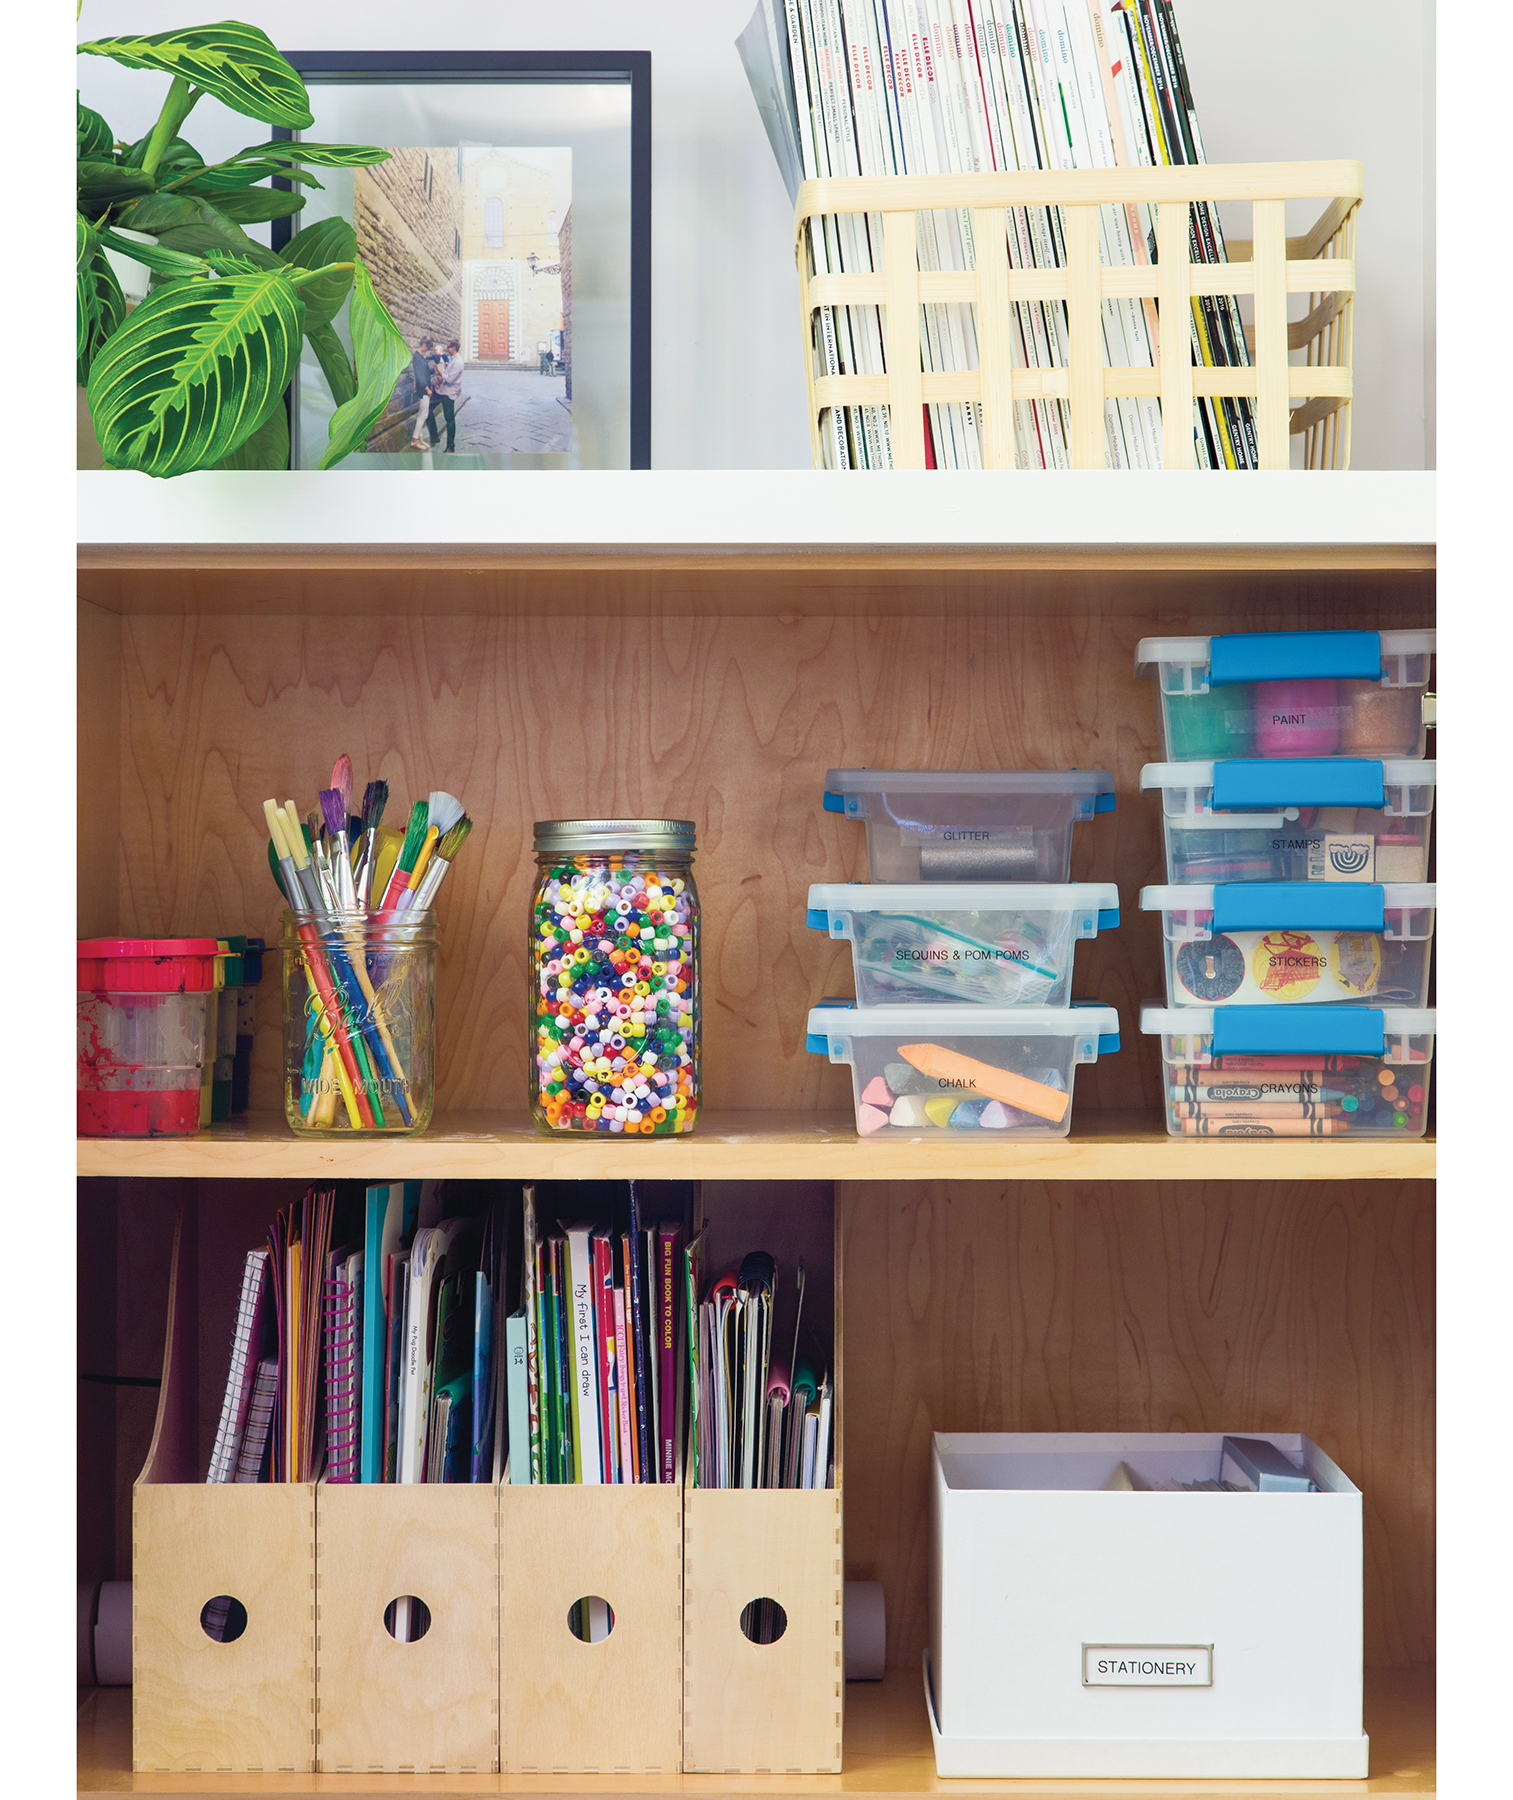 Cabinets full of kids' magazines, coloring books, notepads